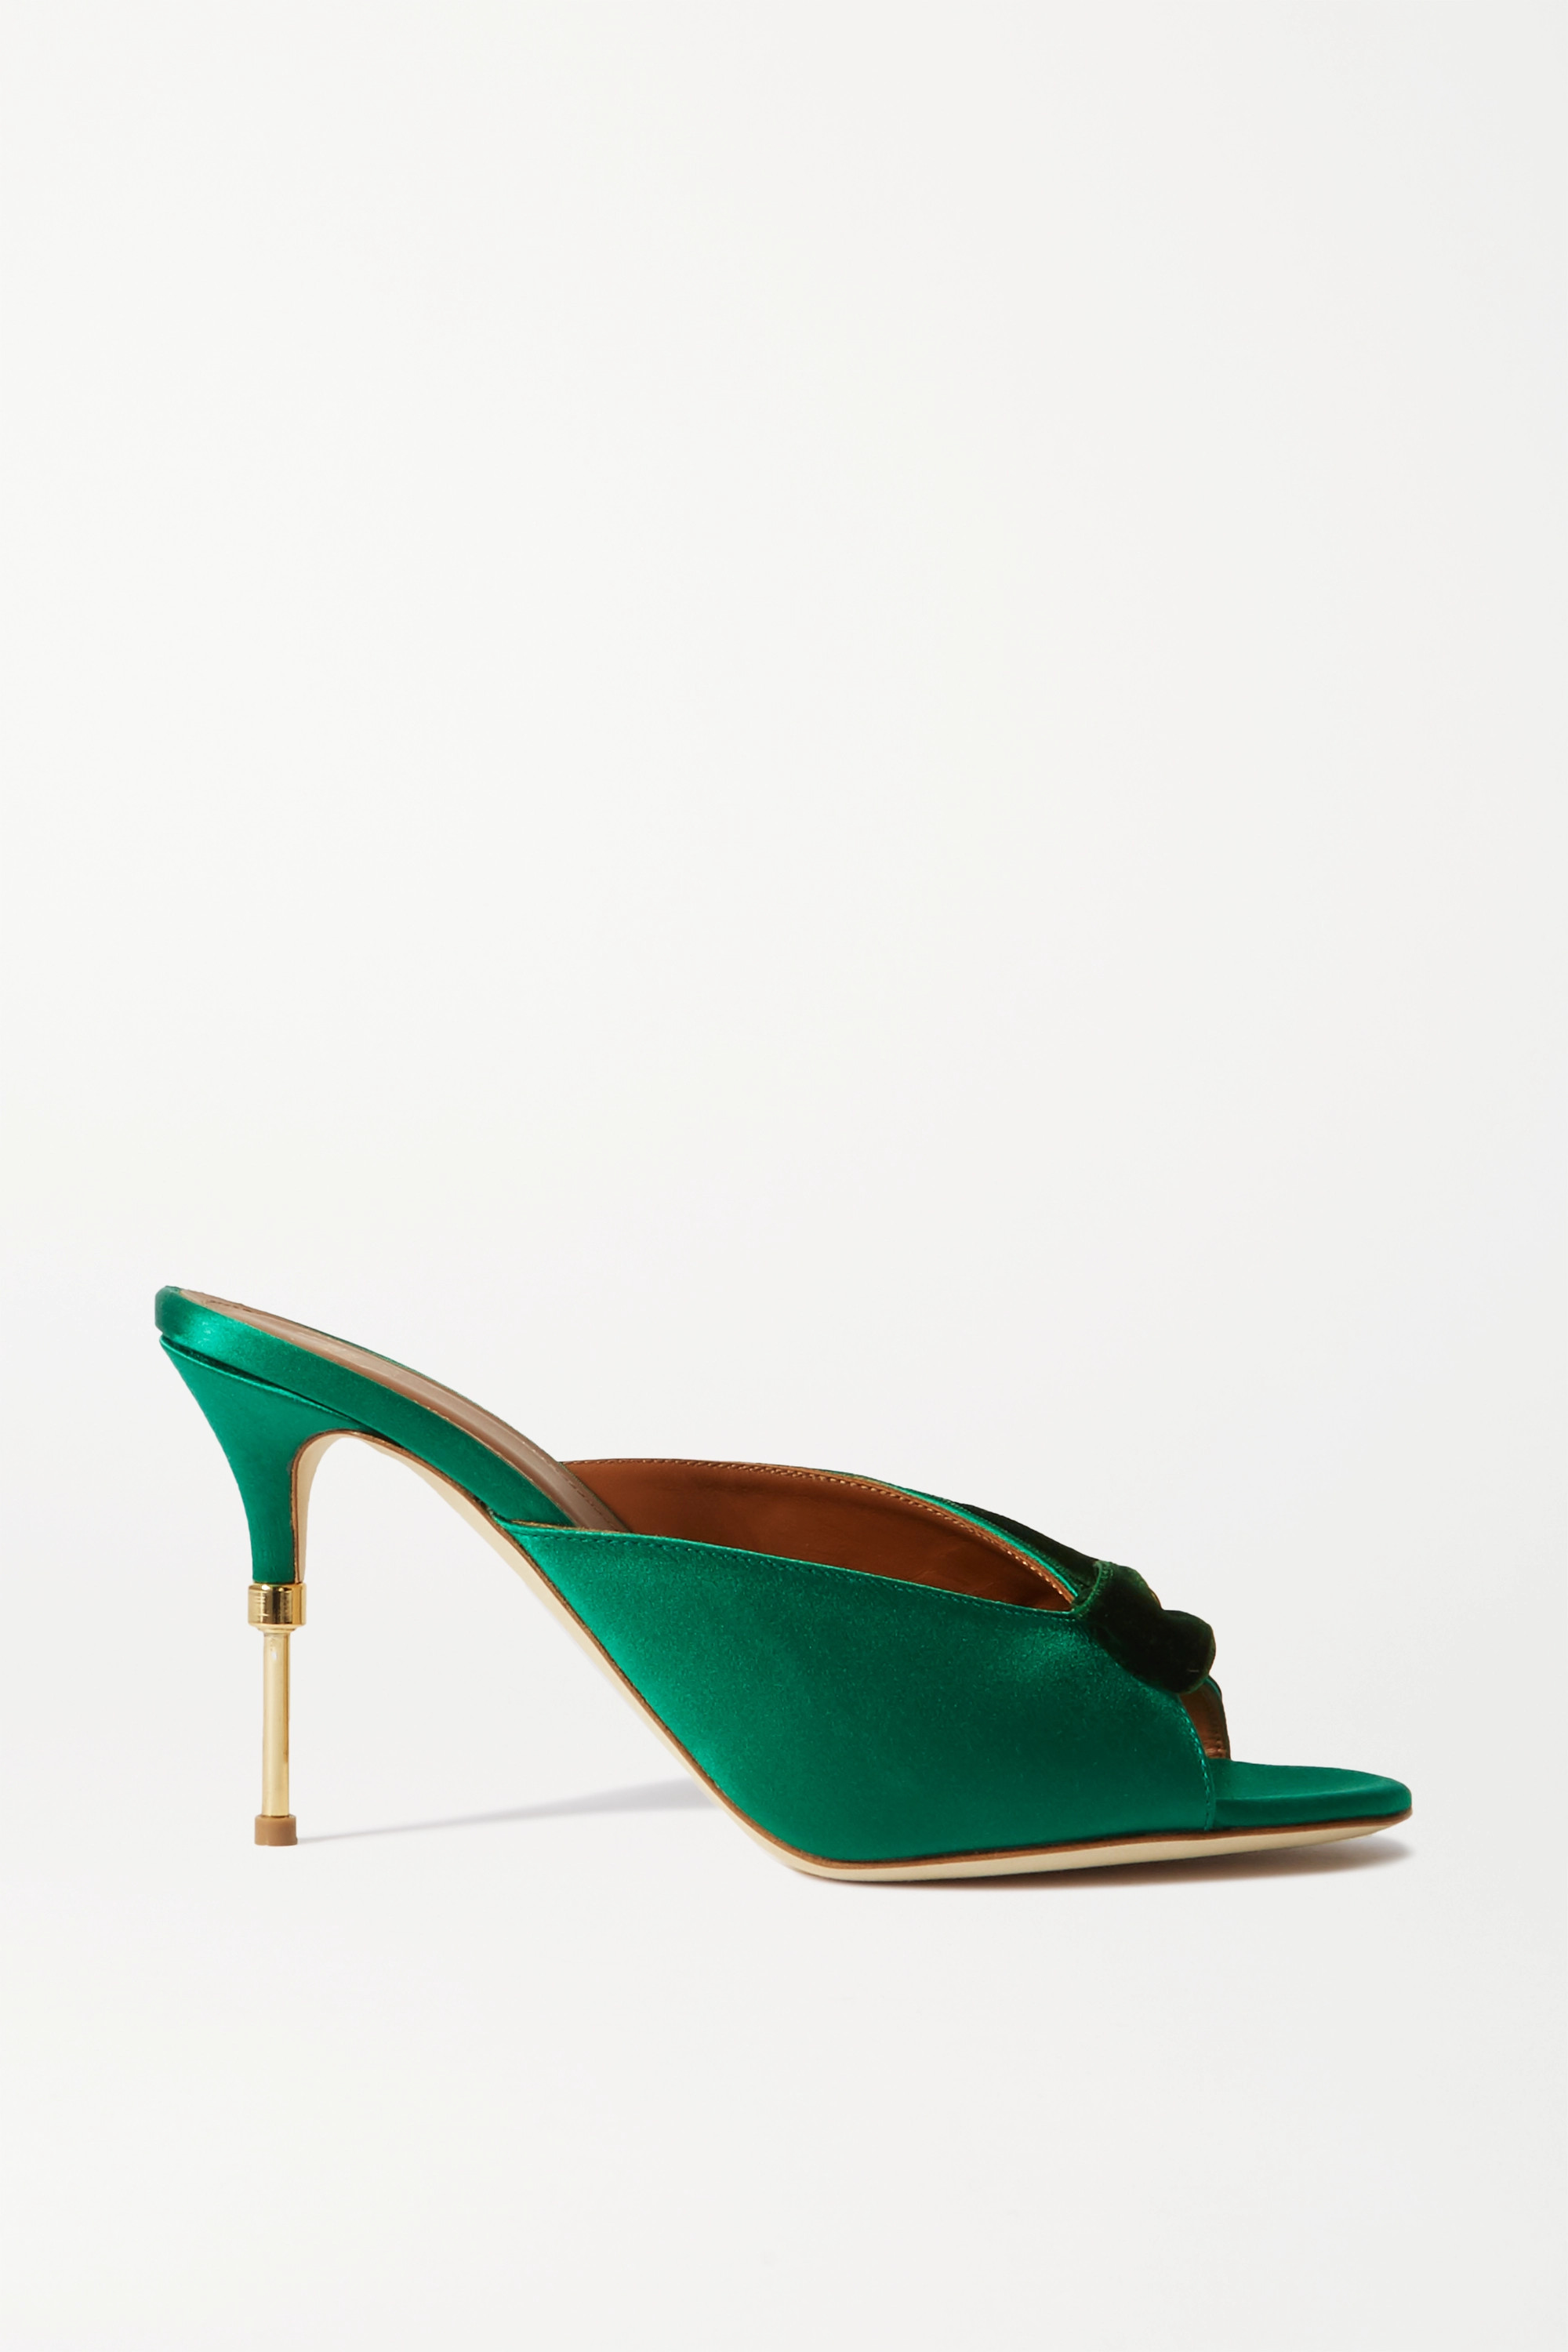 Malone Souliers Paige 85 velvet-trimmed satin mules